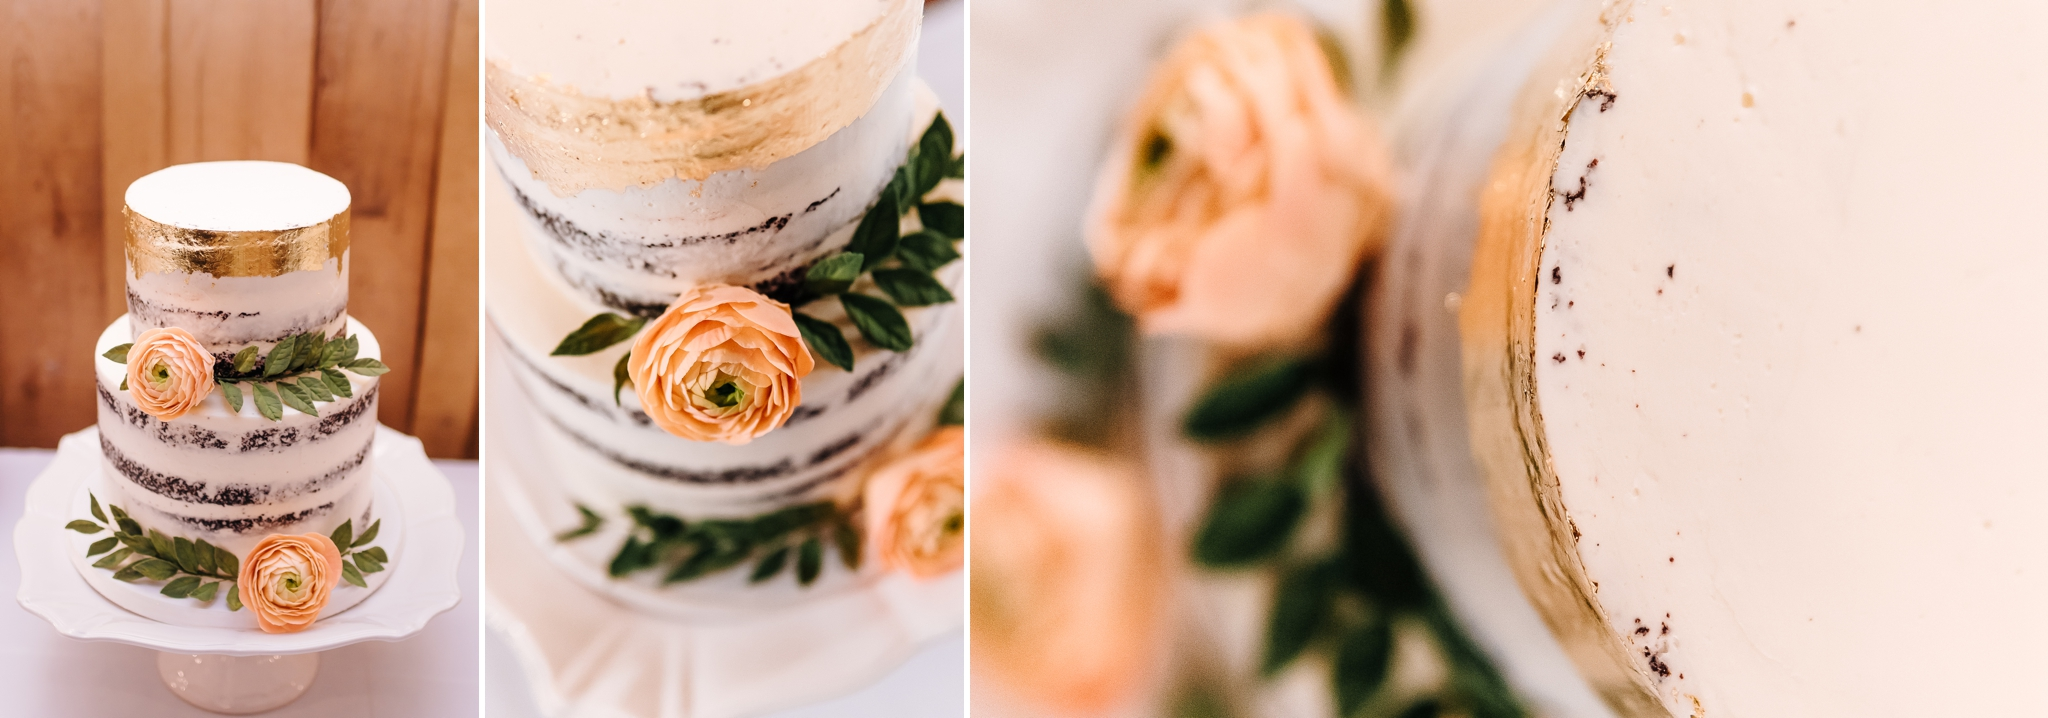 Weding_cake_by_passionflower_cakes_at_wolftrap_farms_by_jonathan_and_hannah_photography